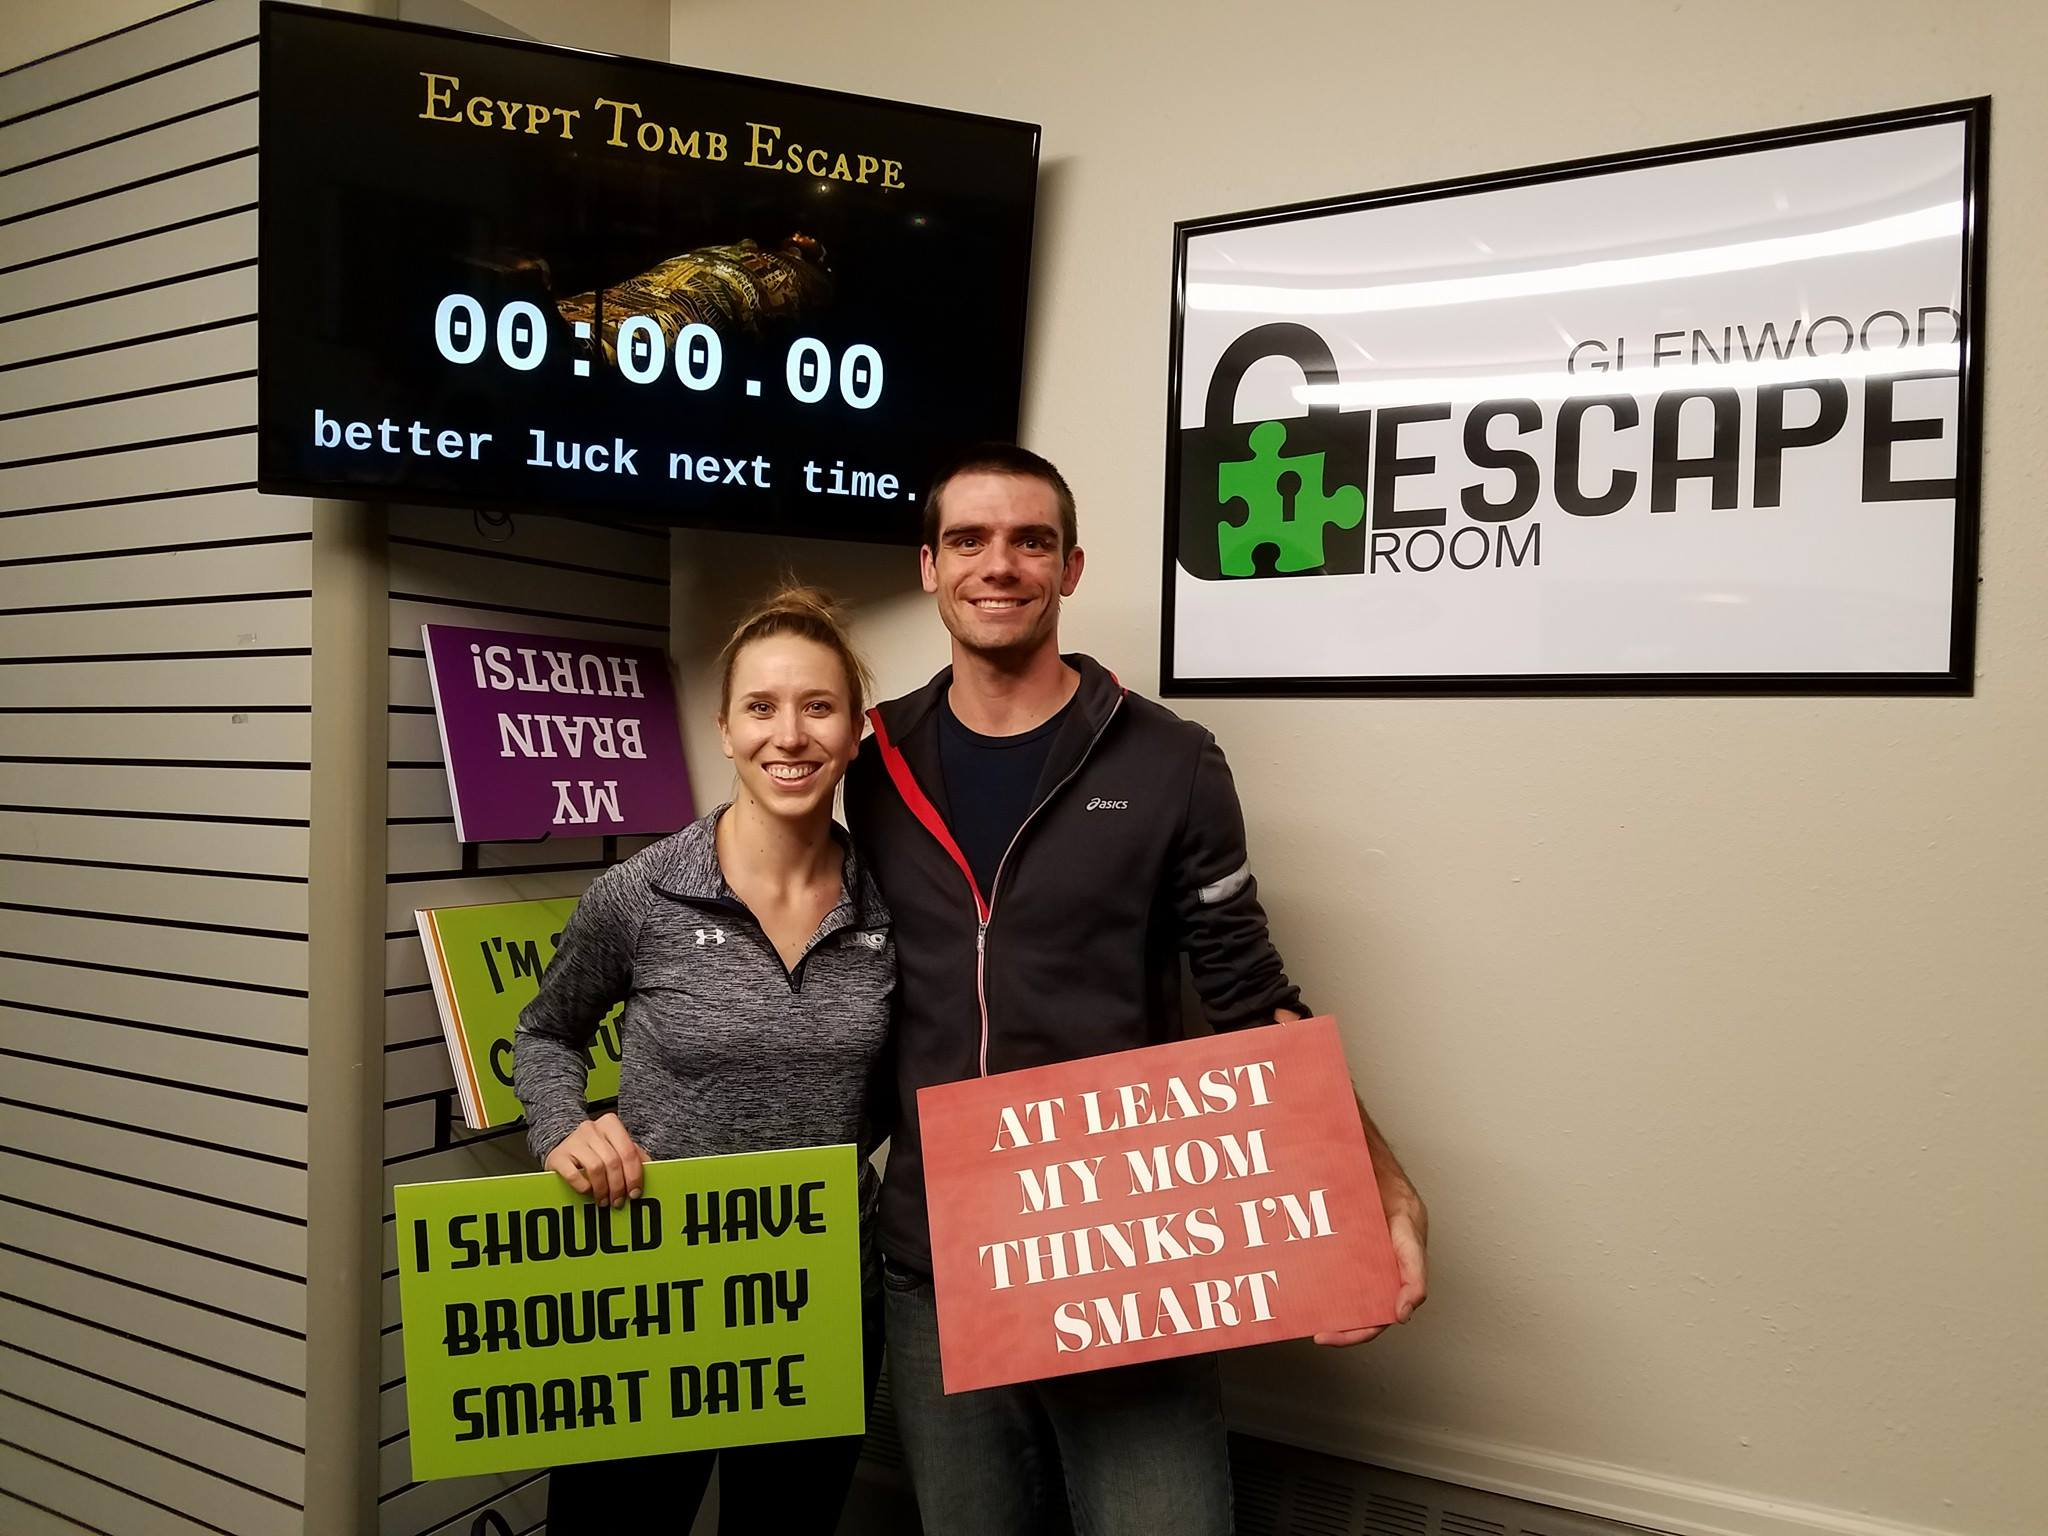 Winners and Losers - Glenwood Escape